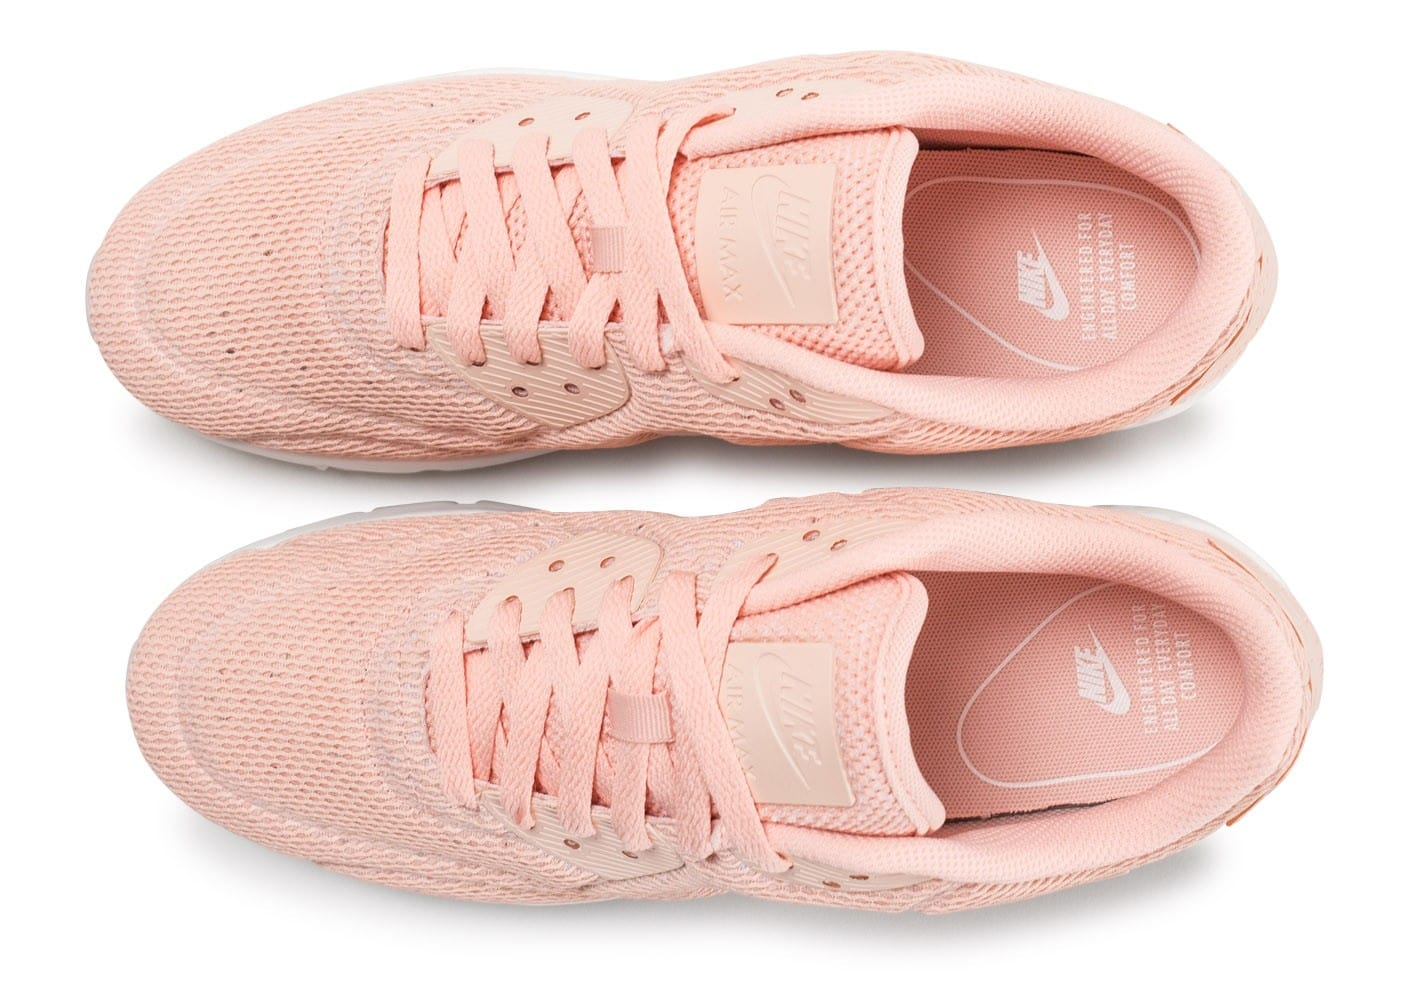 newest afeaa 47200 ... Chaussures Nike Air Max 90 Ultra 2.0 Breeze Arctic orange vue arrière  ...